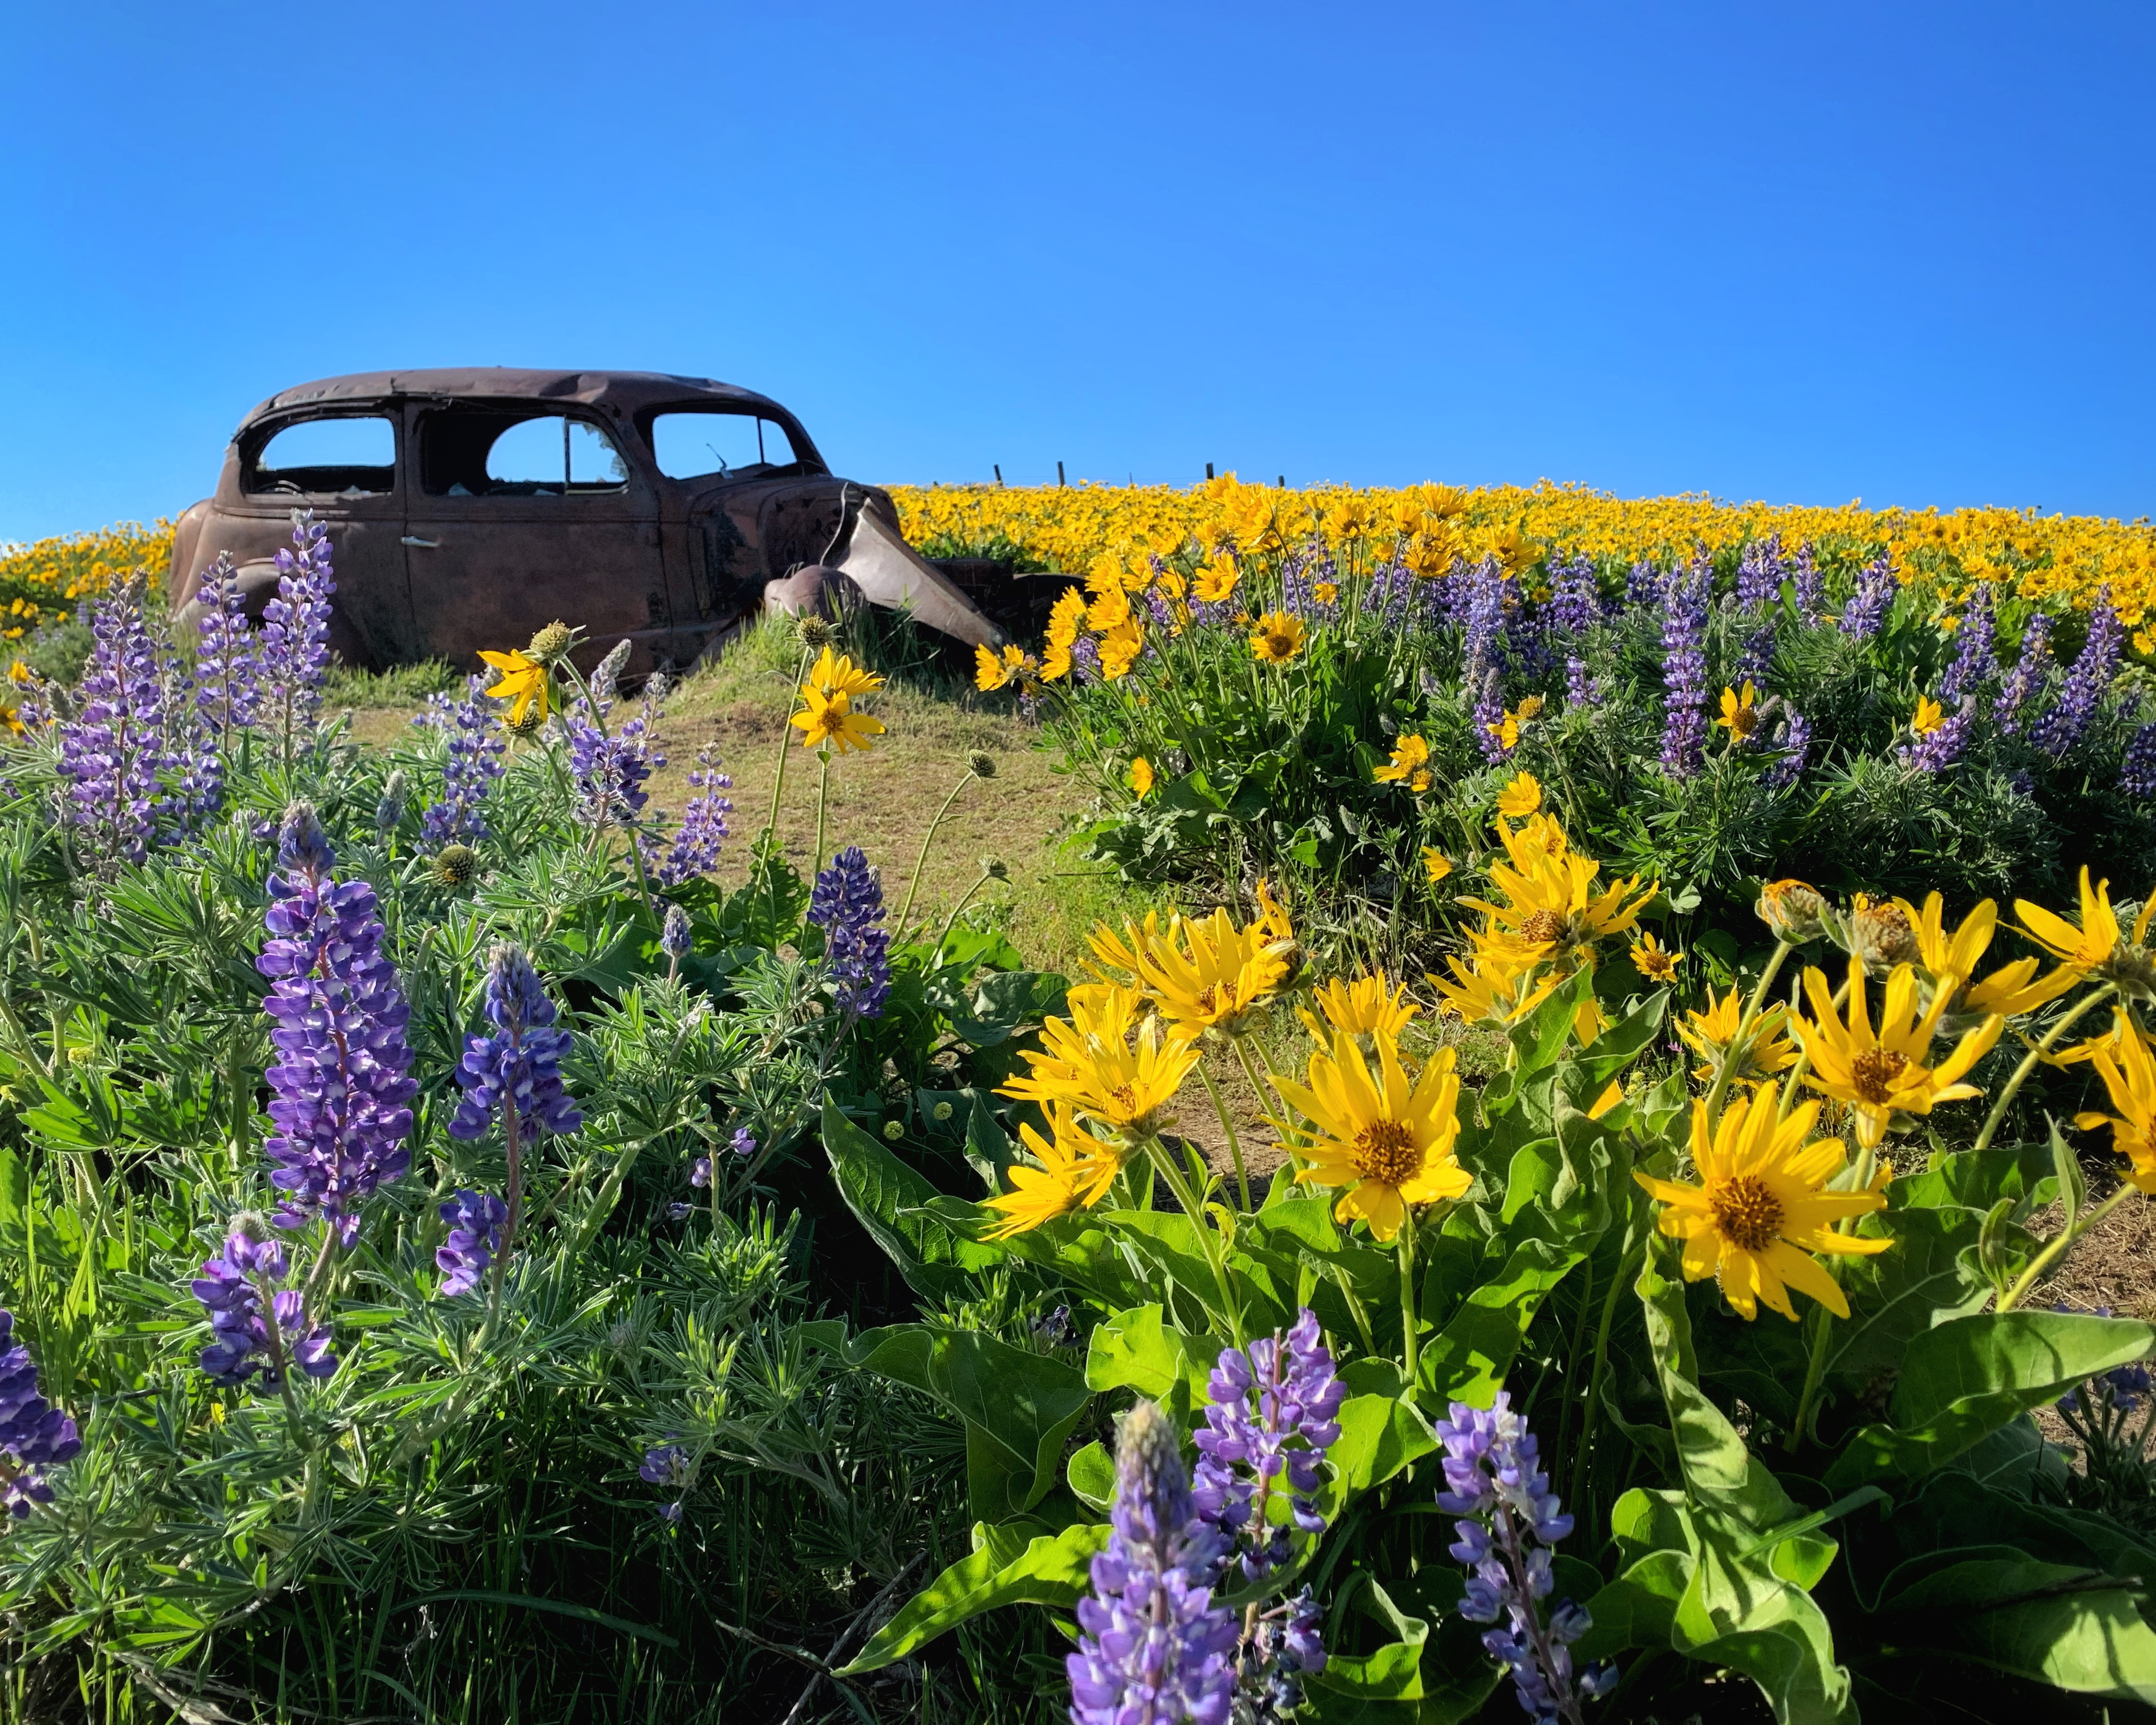 old rusted car in field full of yellow and purple wildflowers